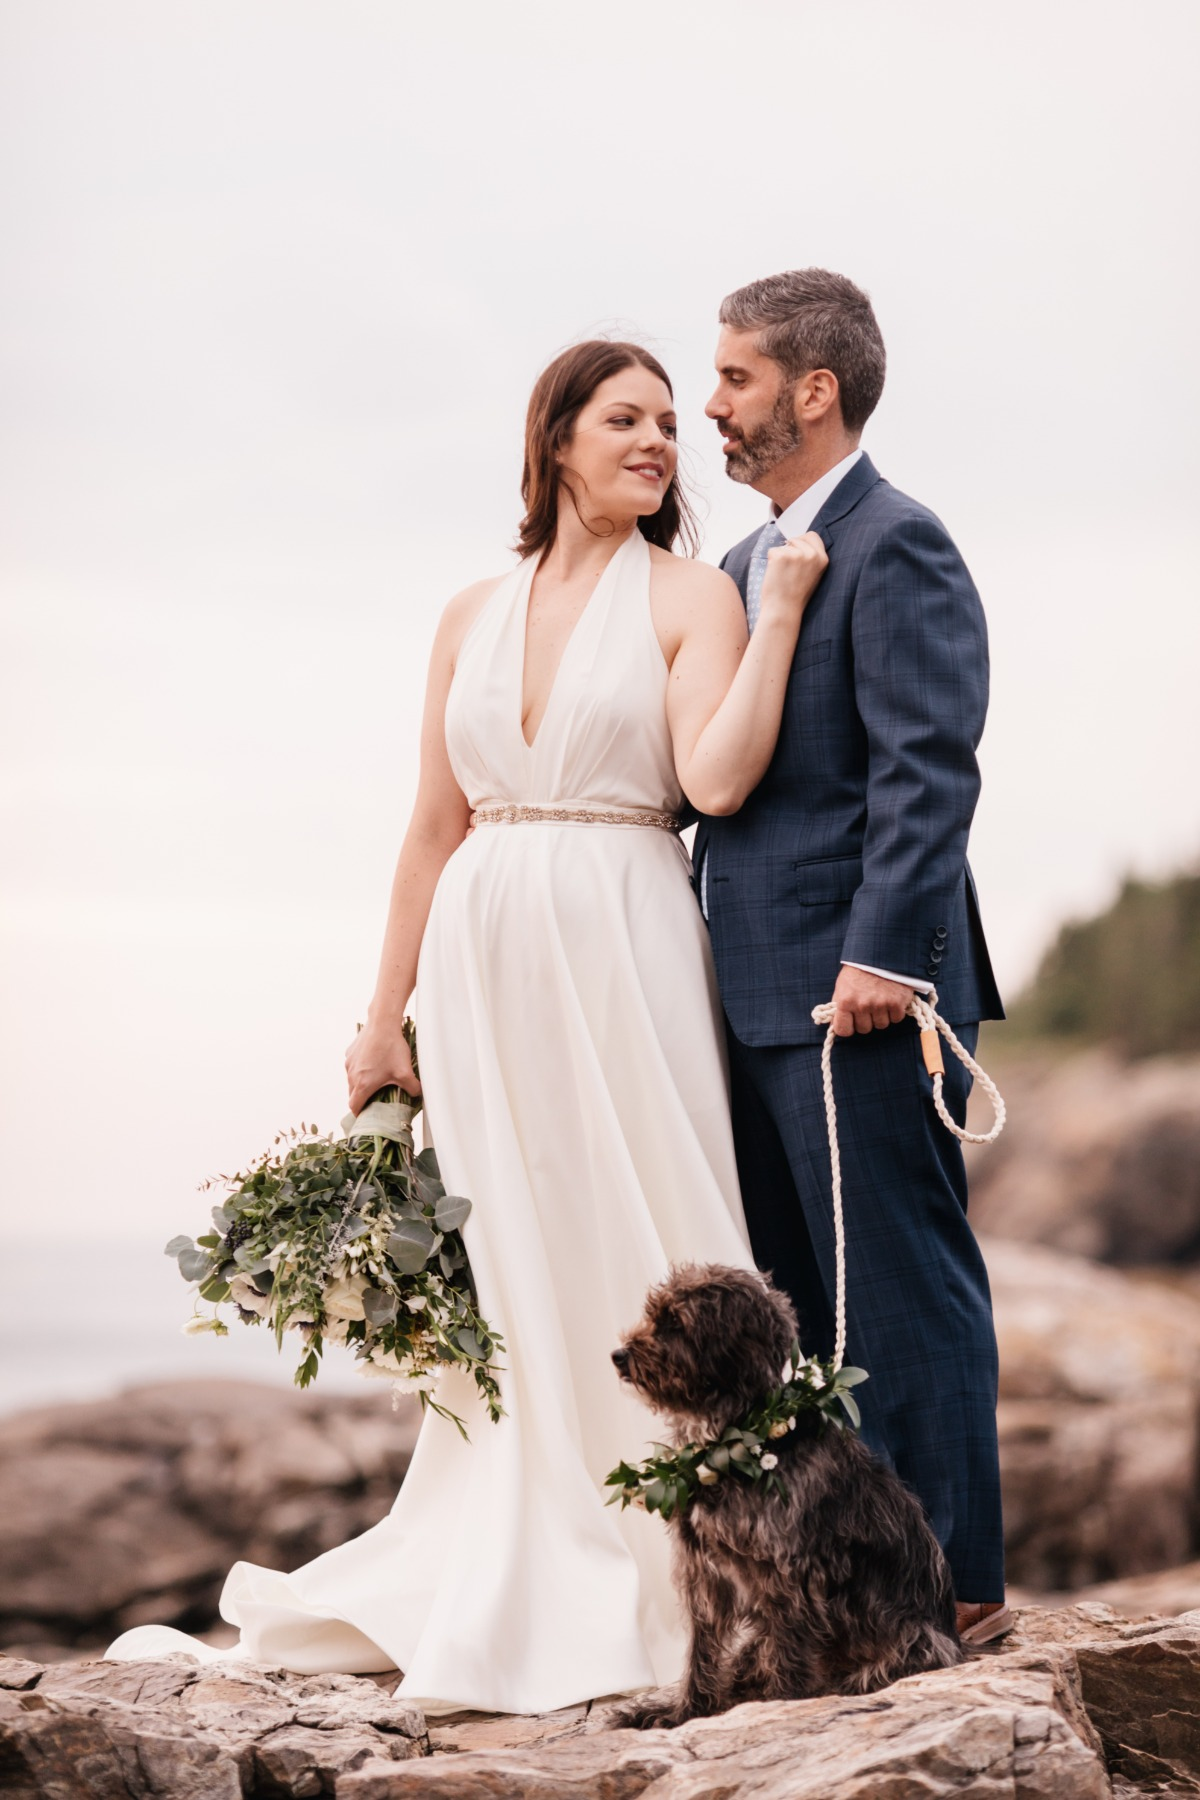 Seaside wedding photos in Maine